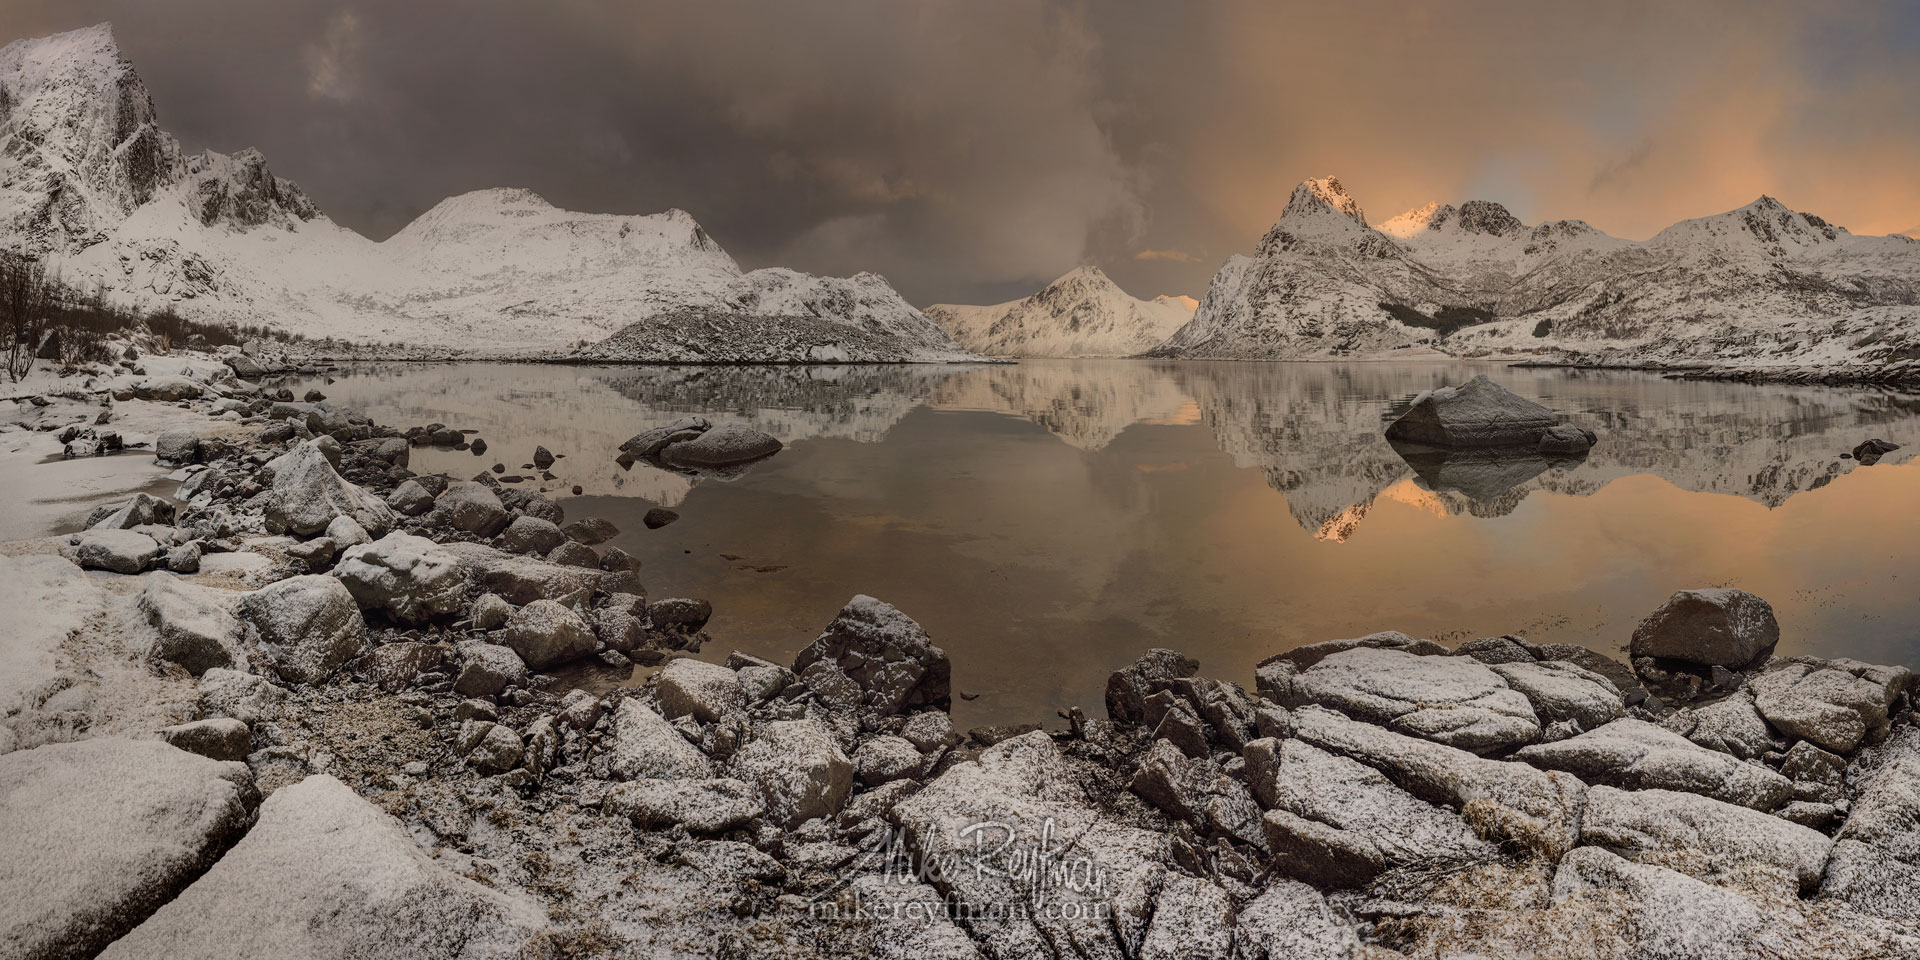 LF-MRD1E0503-9_Pano-2x1 - Lofoten Archipelago in Winter, Arctic Norway - Mike Reyfman Photography